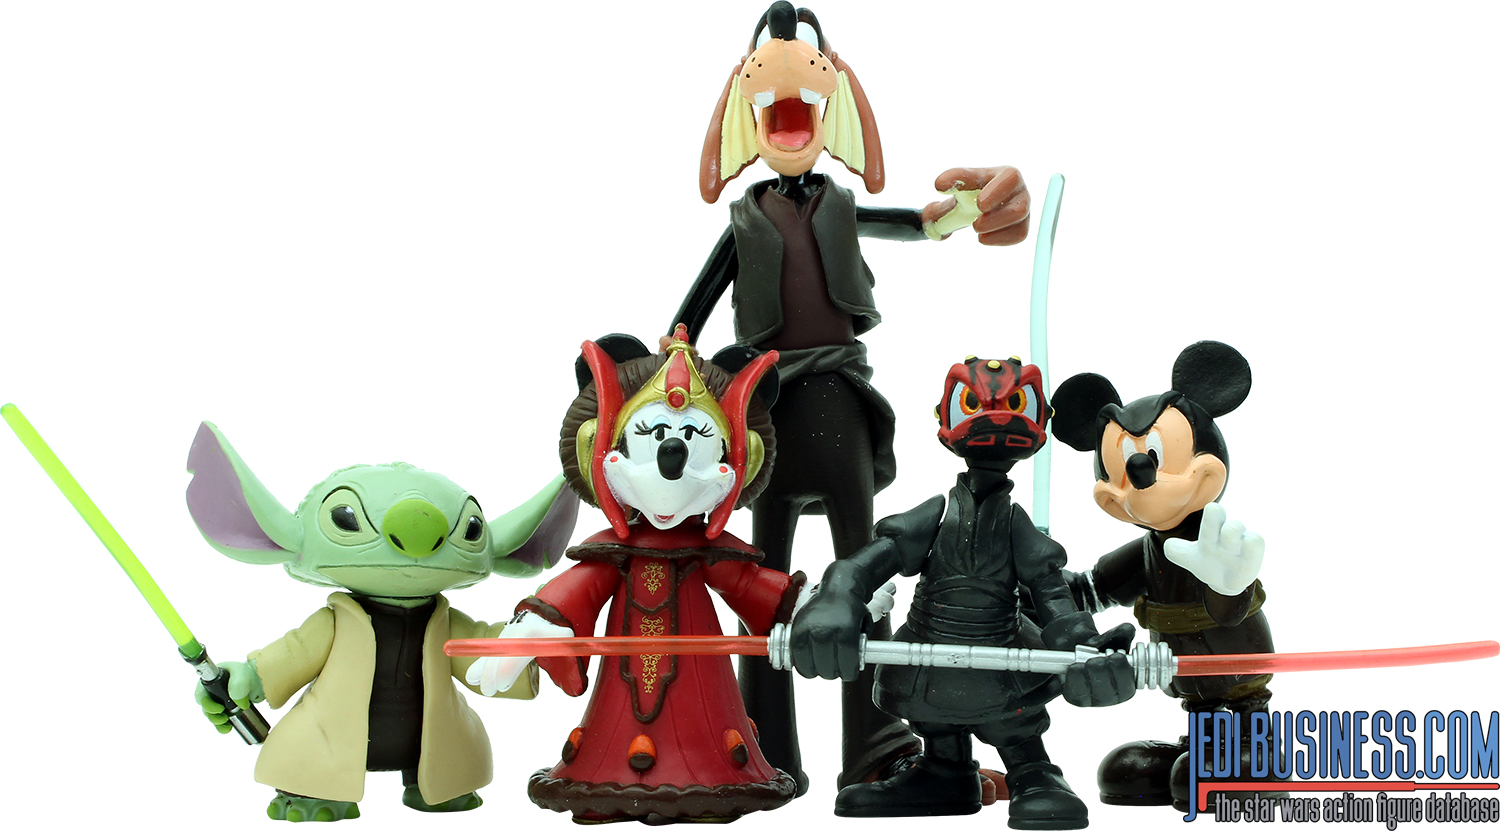 Goofy, Series 2 - Goofy As Jar Jar Binks